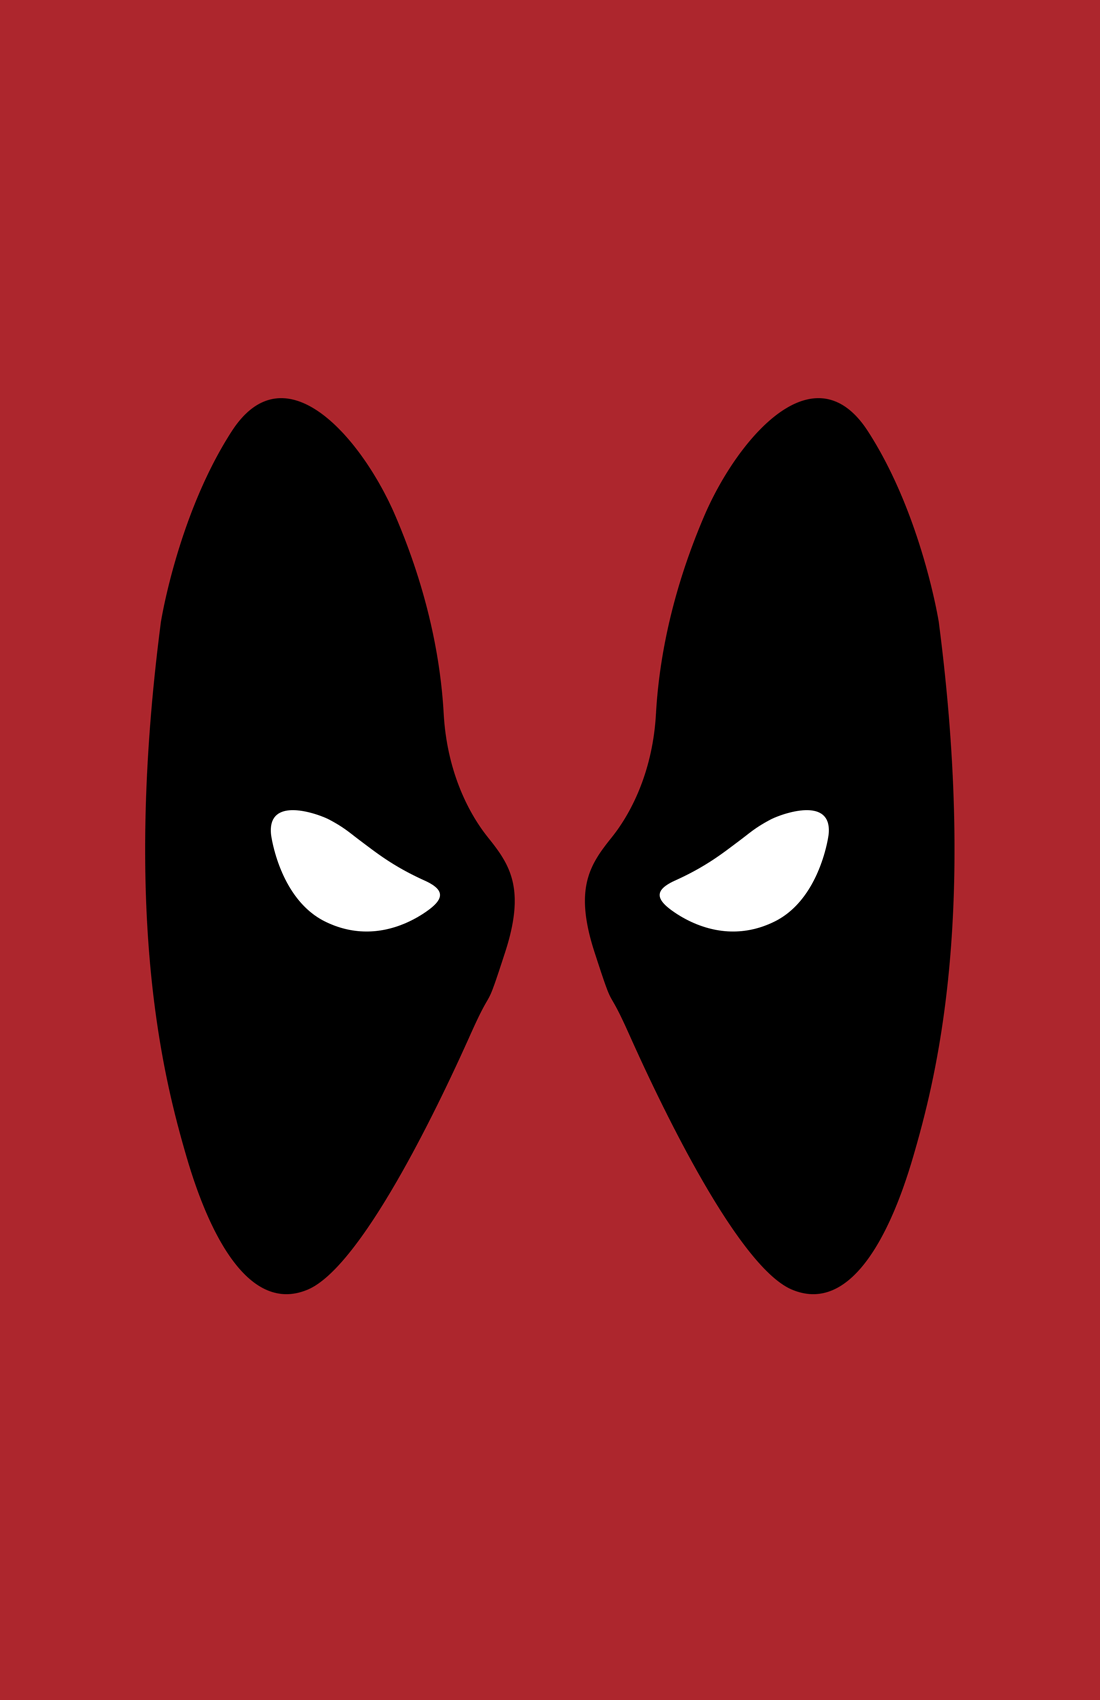 Deadpool minimalist mask design by Minimalist Heroes.